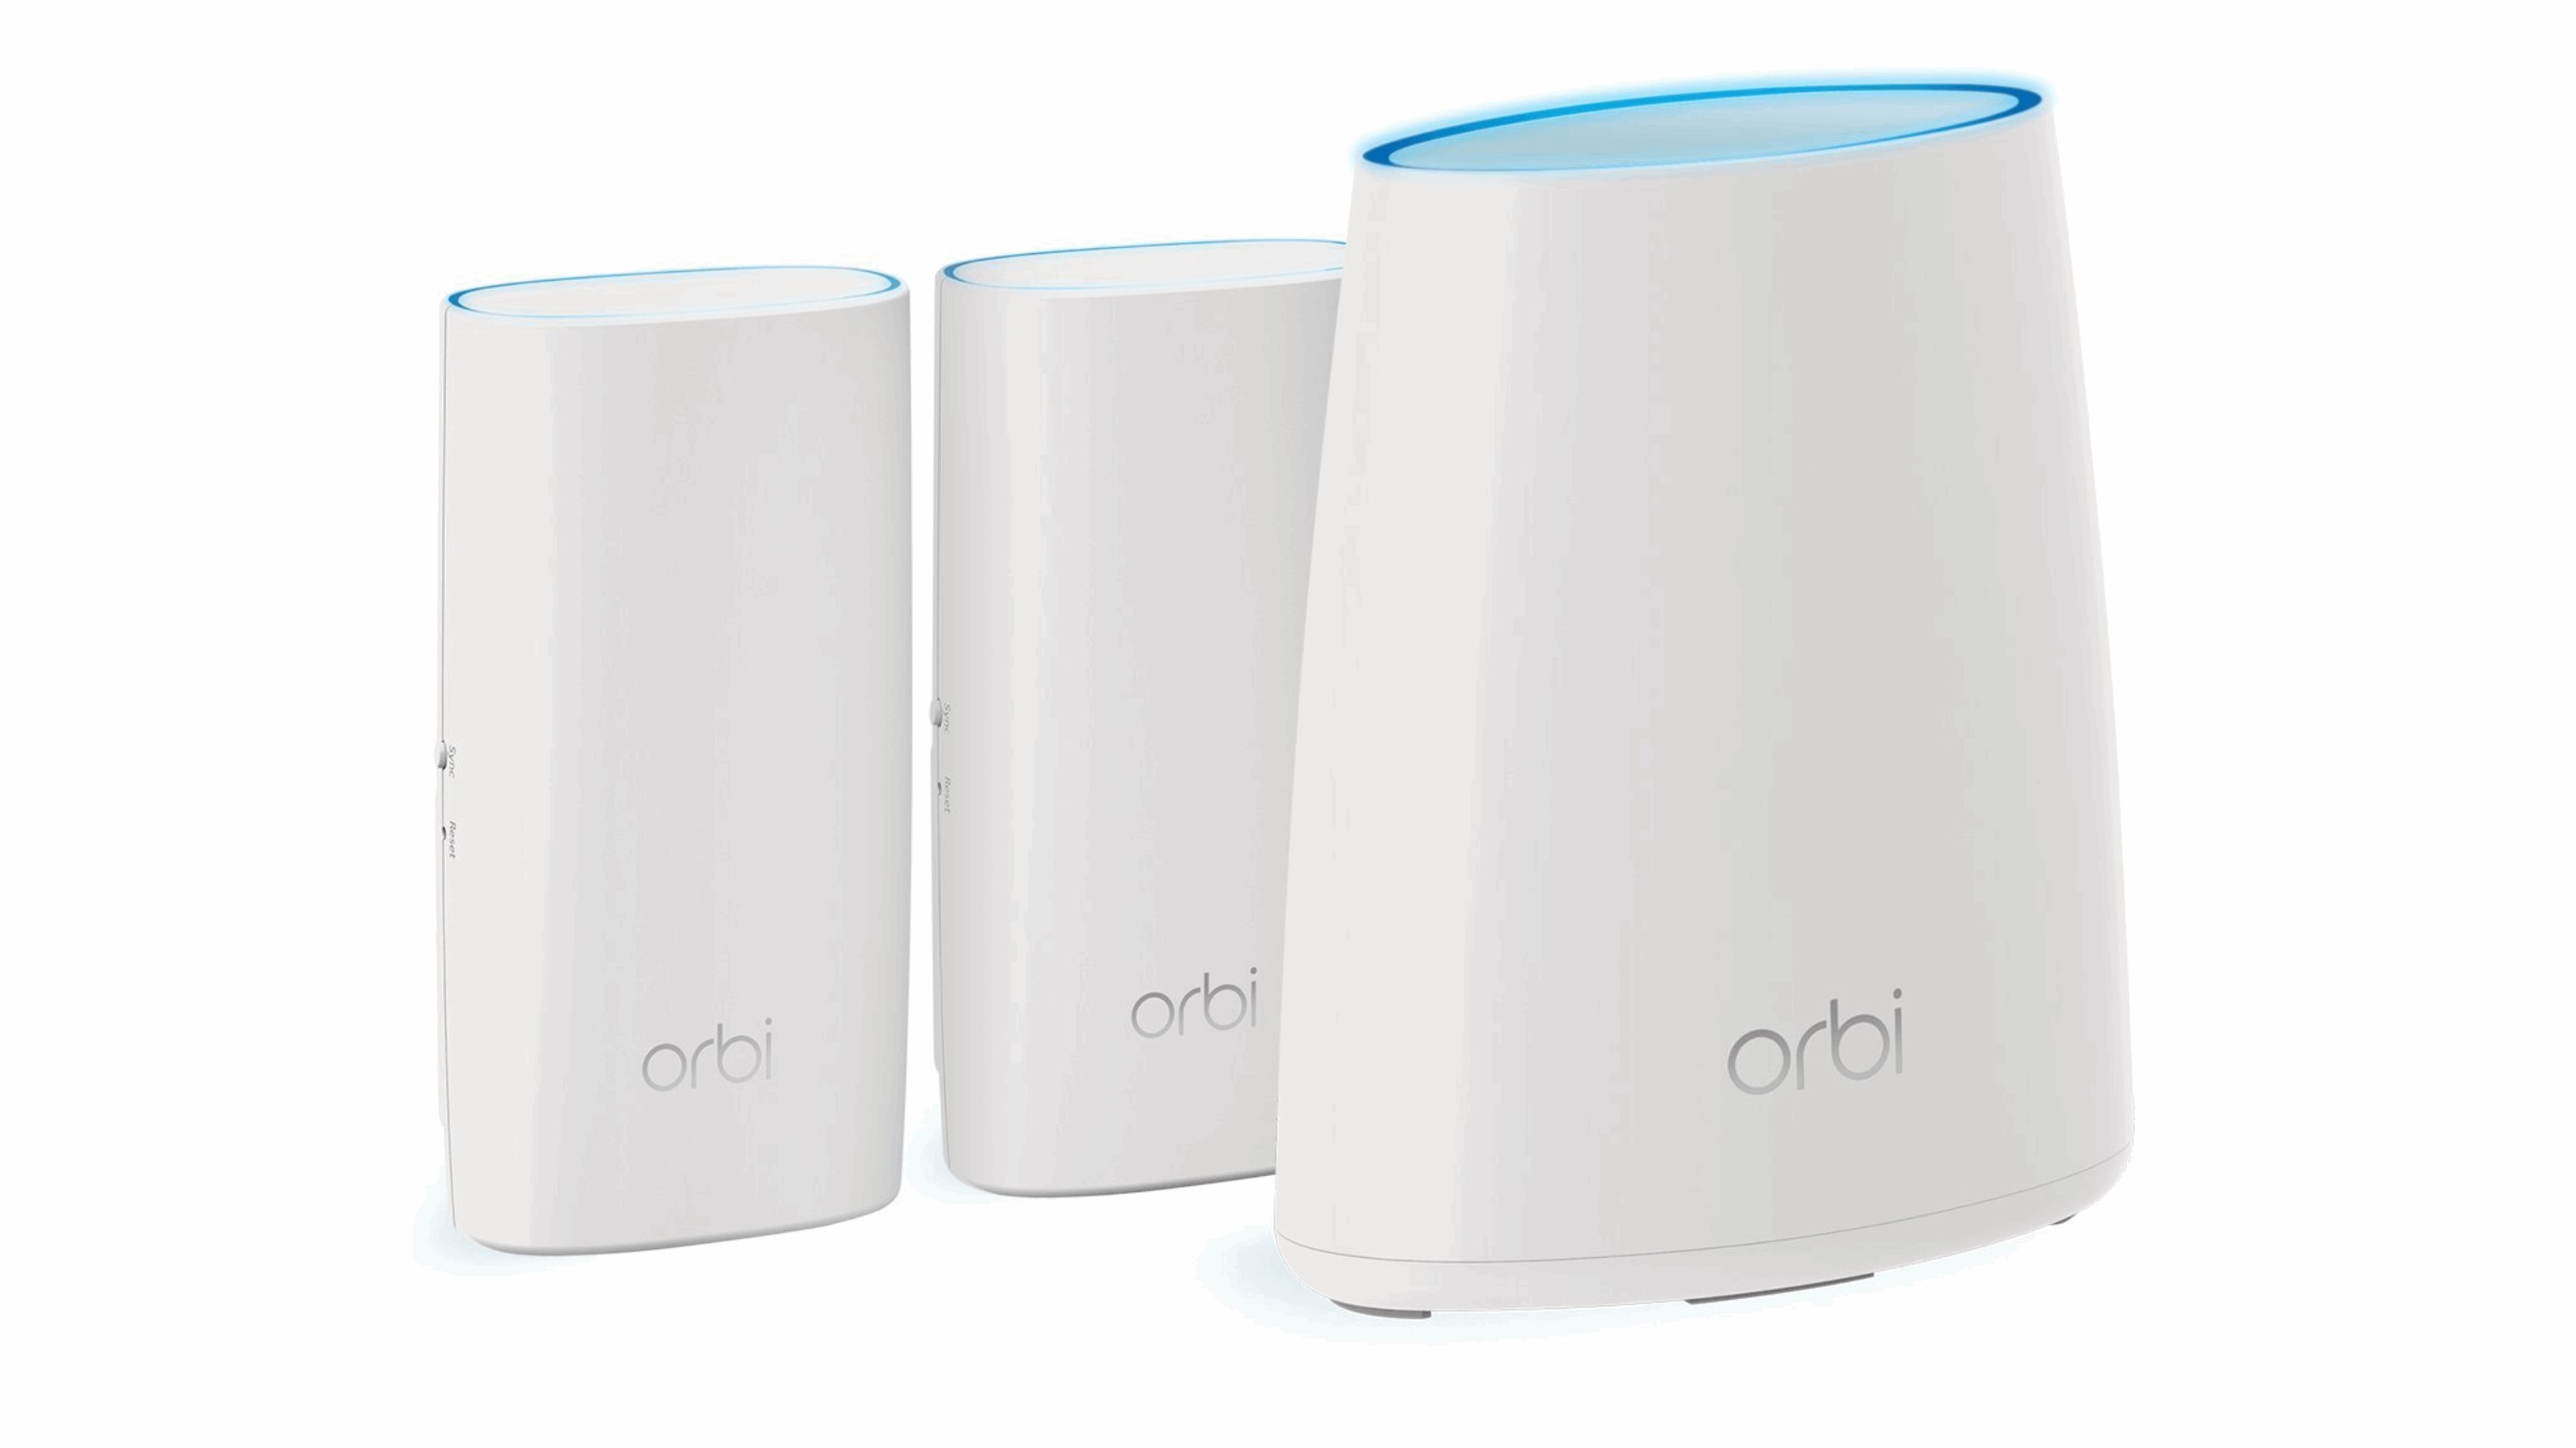 Get a Netgear Orbi RBK33 mesh Wi-Fi 3-Pack for just $195